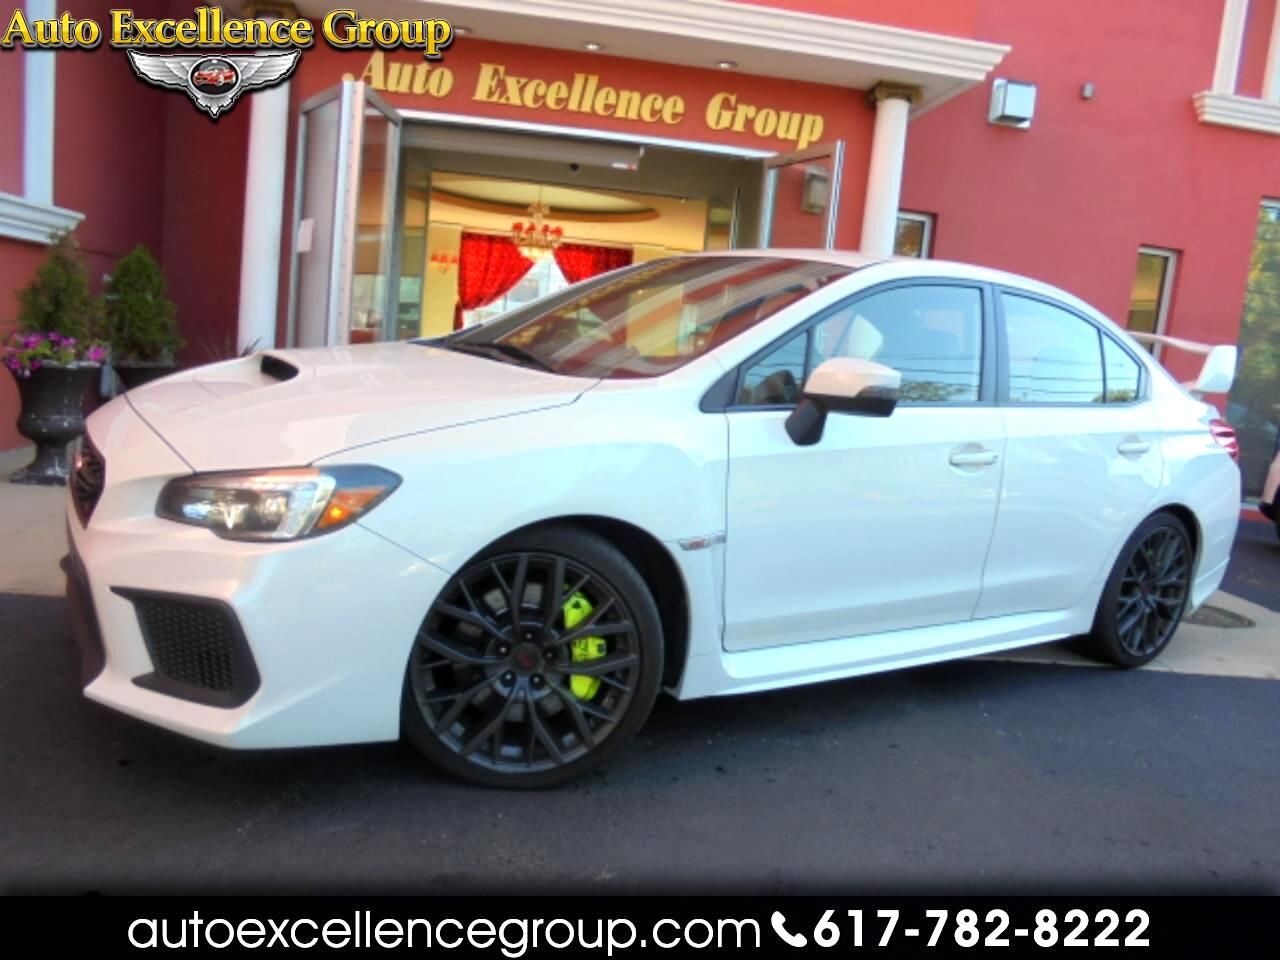 used cars for sale boston ma 01906 auto excellence group boston ma 01906 auto excellence